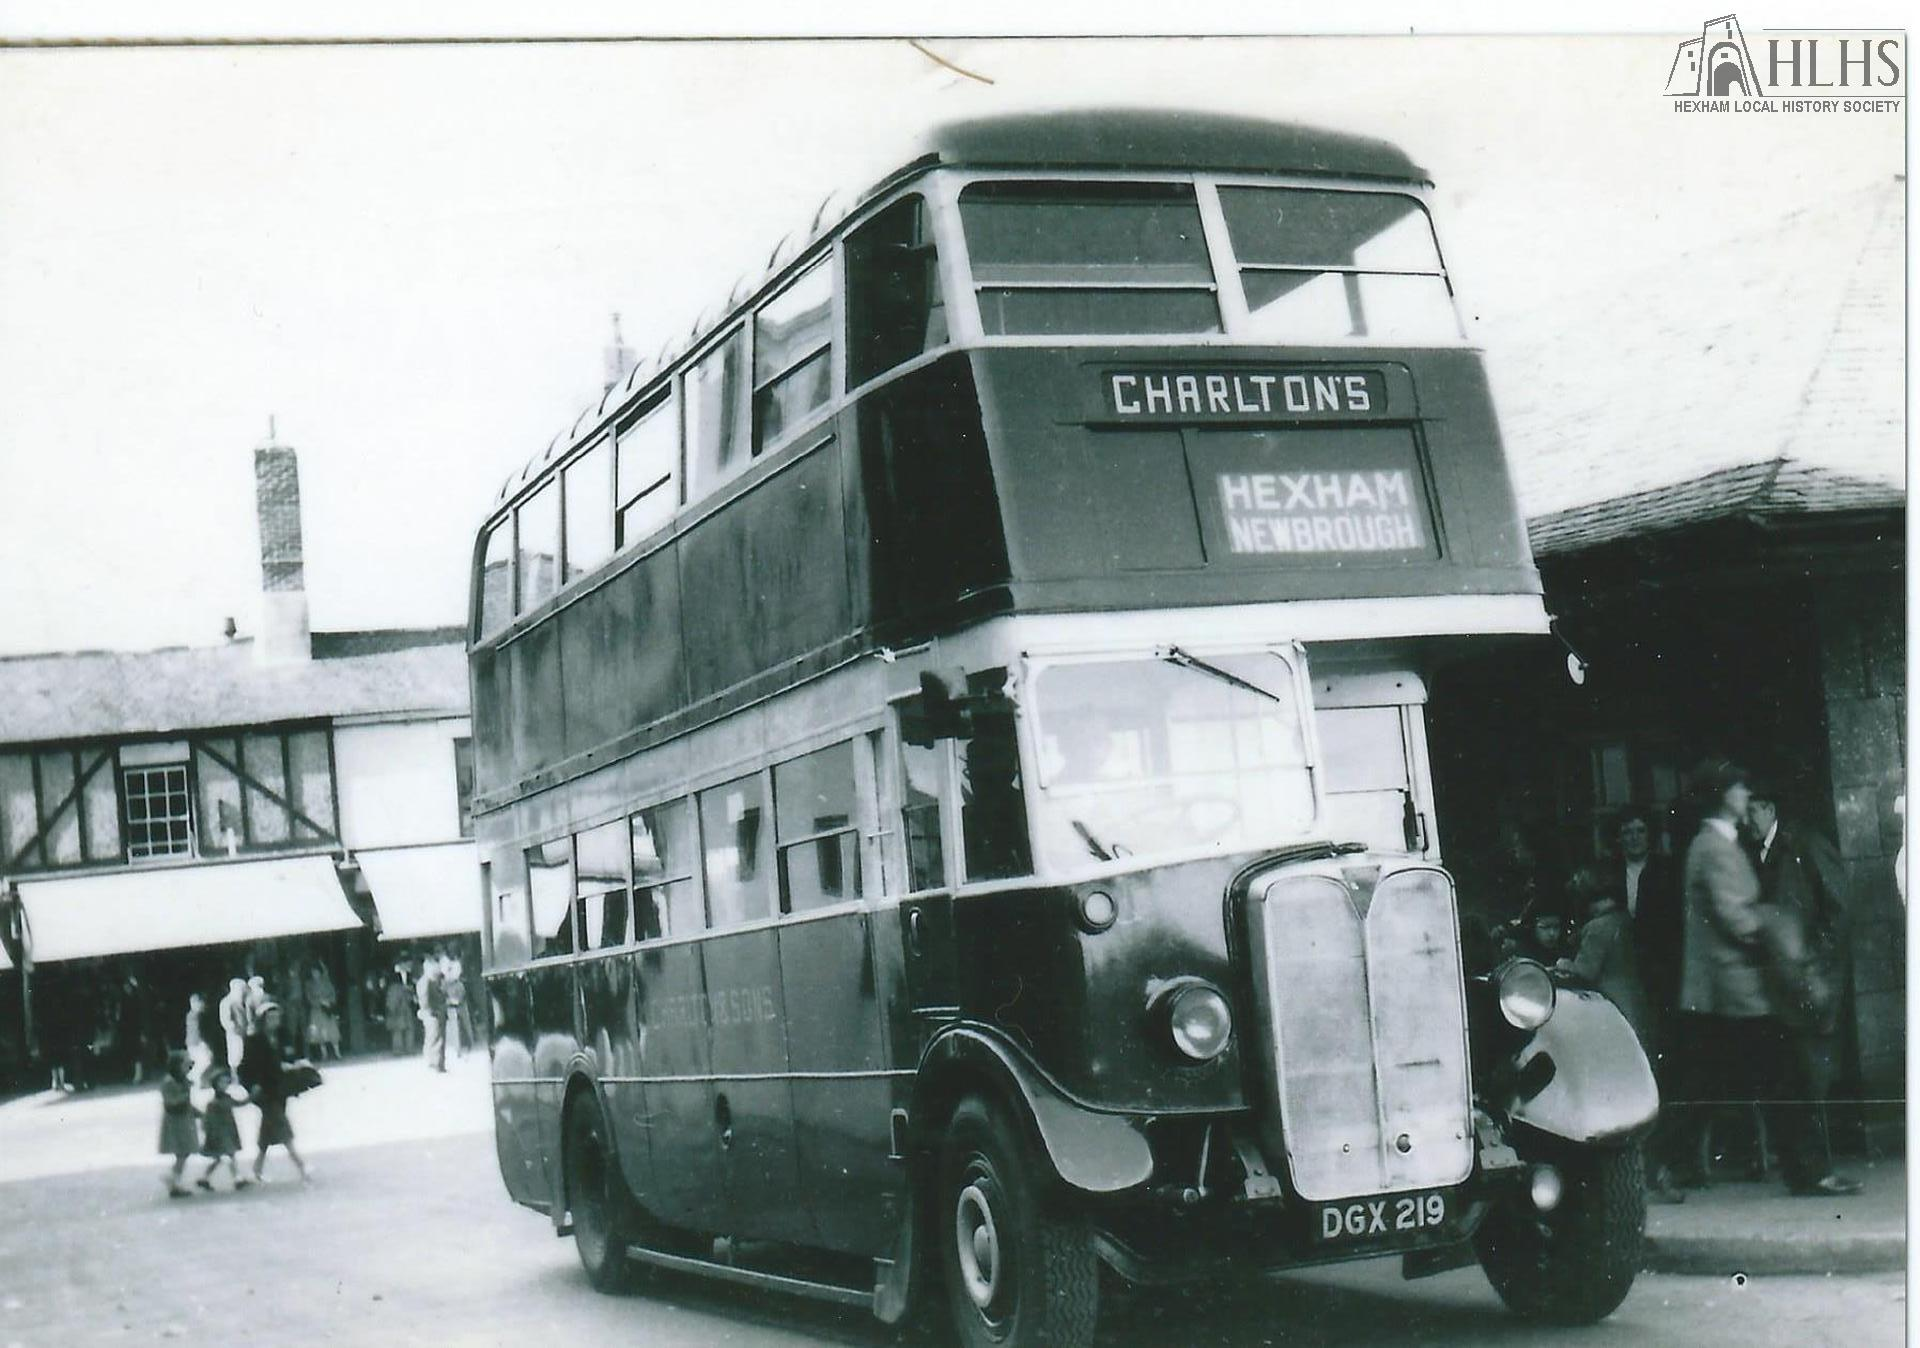 c1960: Bus station in Commercial Place (off Priestpopple) looking N, Charlton's AEC ex-London Transport bus